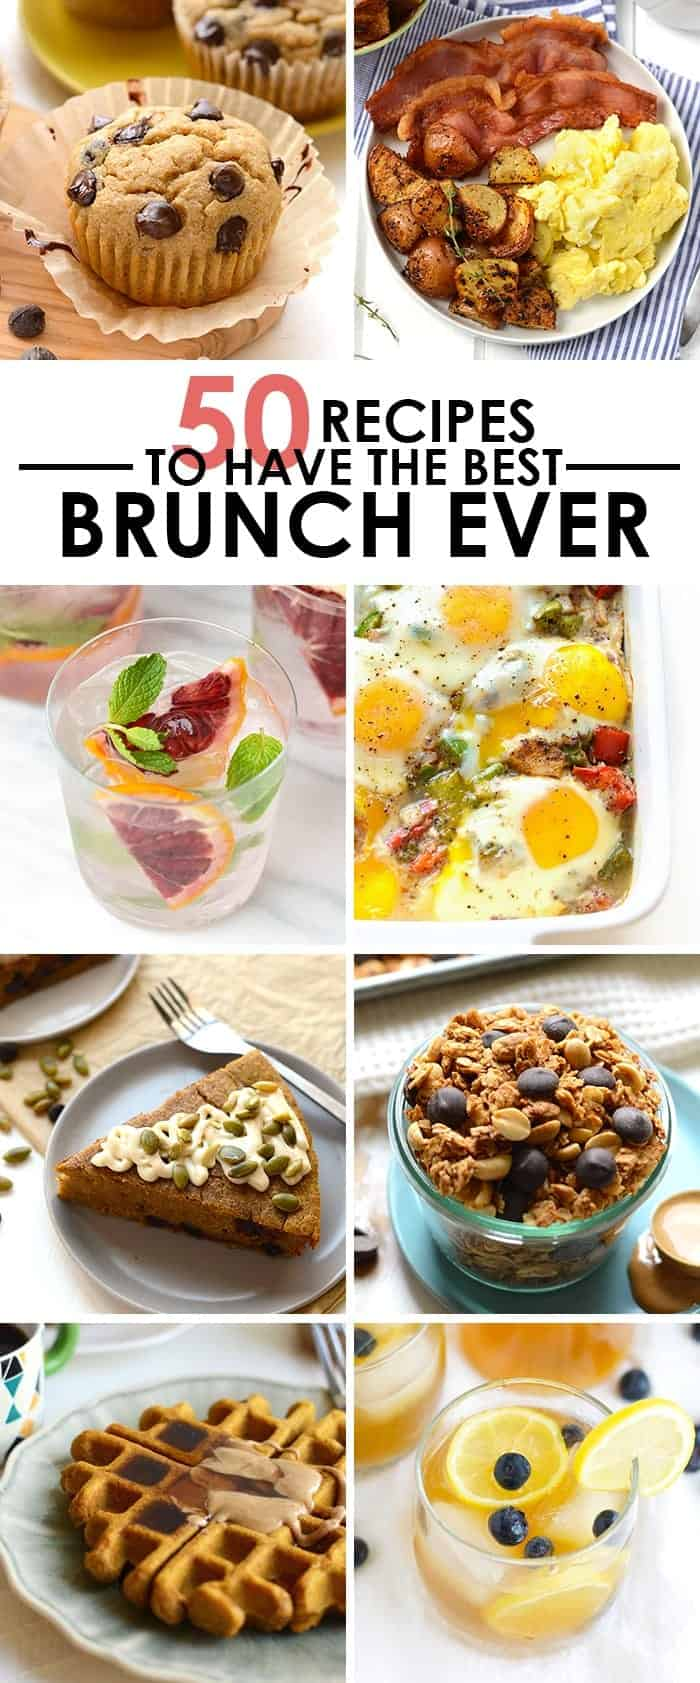 EVERYONE LOVES BRUNCH and that's a fact. Here's 50 recipes to add to your next brunch partay!